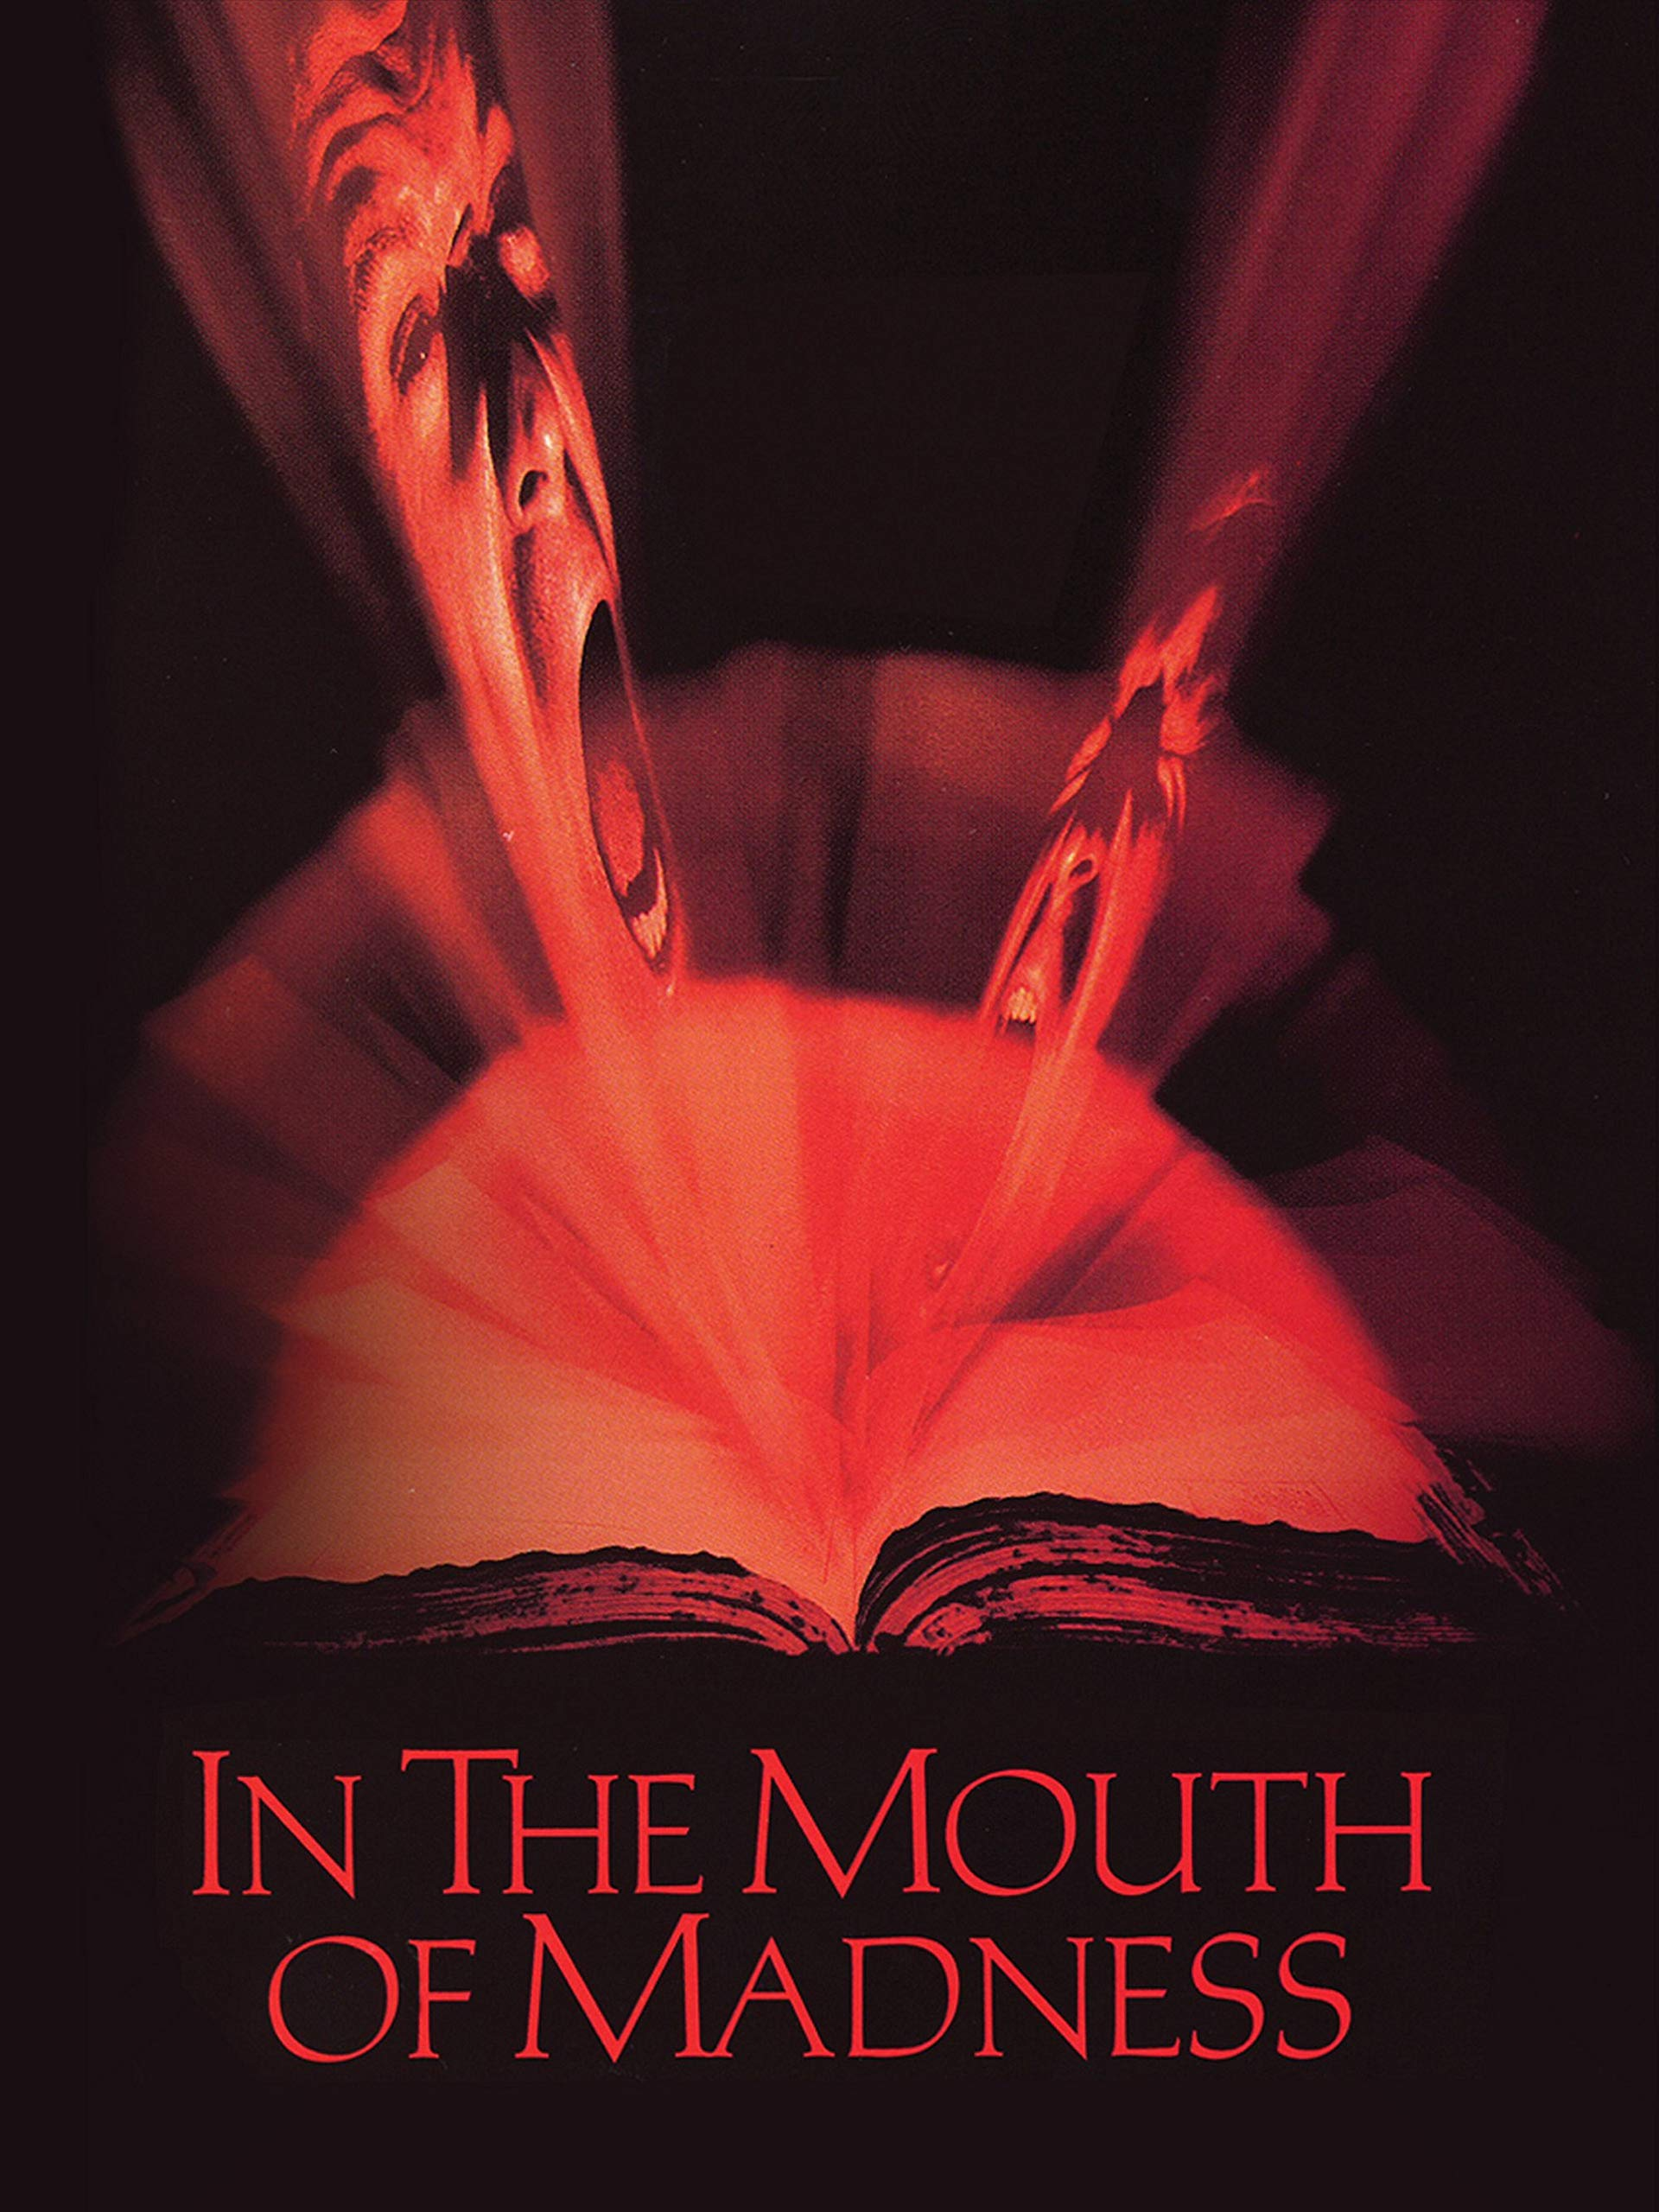 Watch In The Mouth Of Madness (1995)   Prime Video